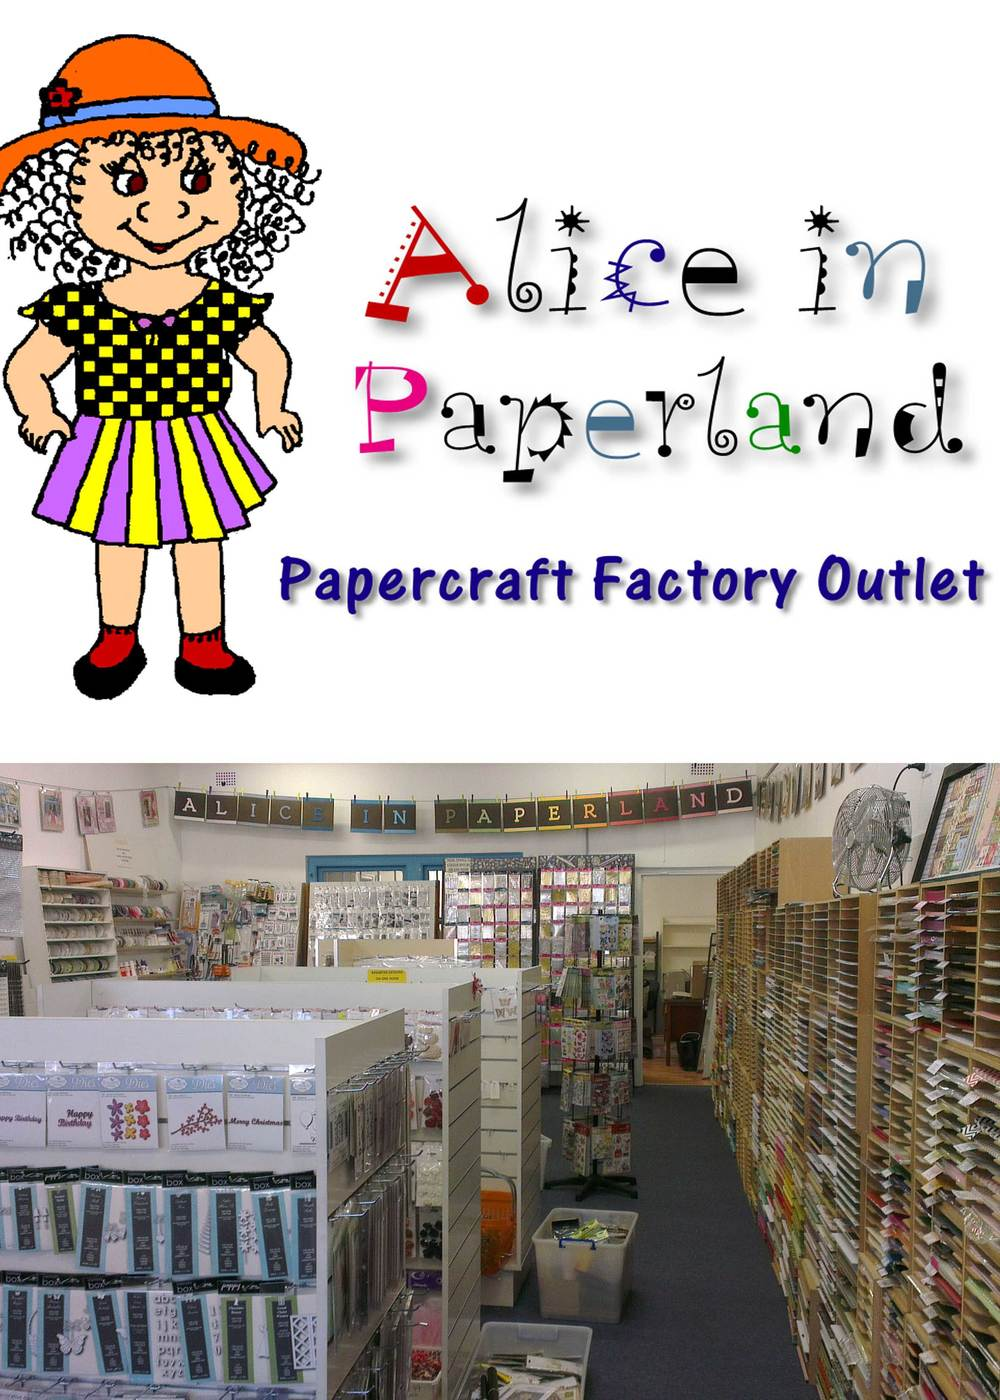 Alice in Paperland  is a papercraft factory outlet specialising in specialty papers, envelopes and invitation supplies, all at competitive pricing as they come straight from their factory. They can help customers design their invitations and can even show them how to put them together at no extra cost. Alice in Paperland is a one stop shop carrying a variety of embellishments and ribbons to give your invitations the finishing touches.  15% off if you mention the name 'Jazzy'.